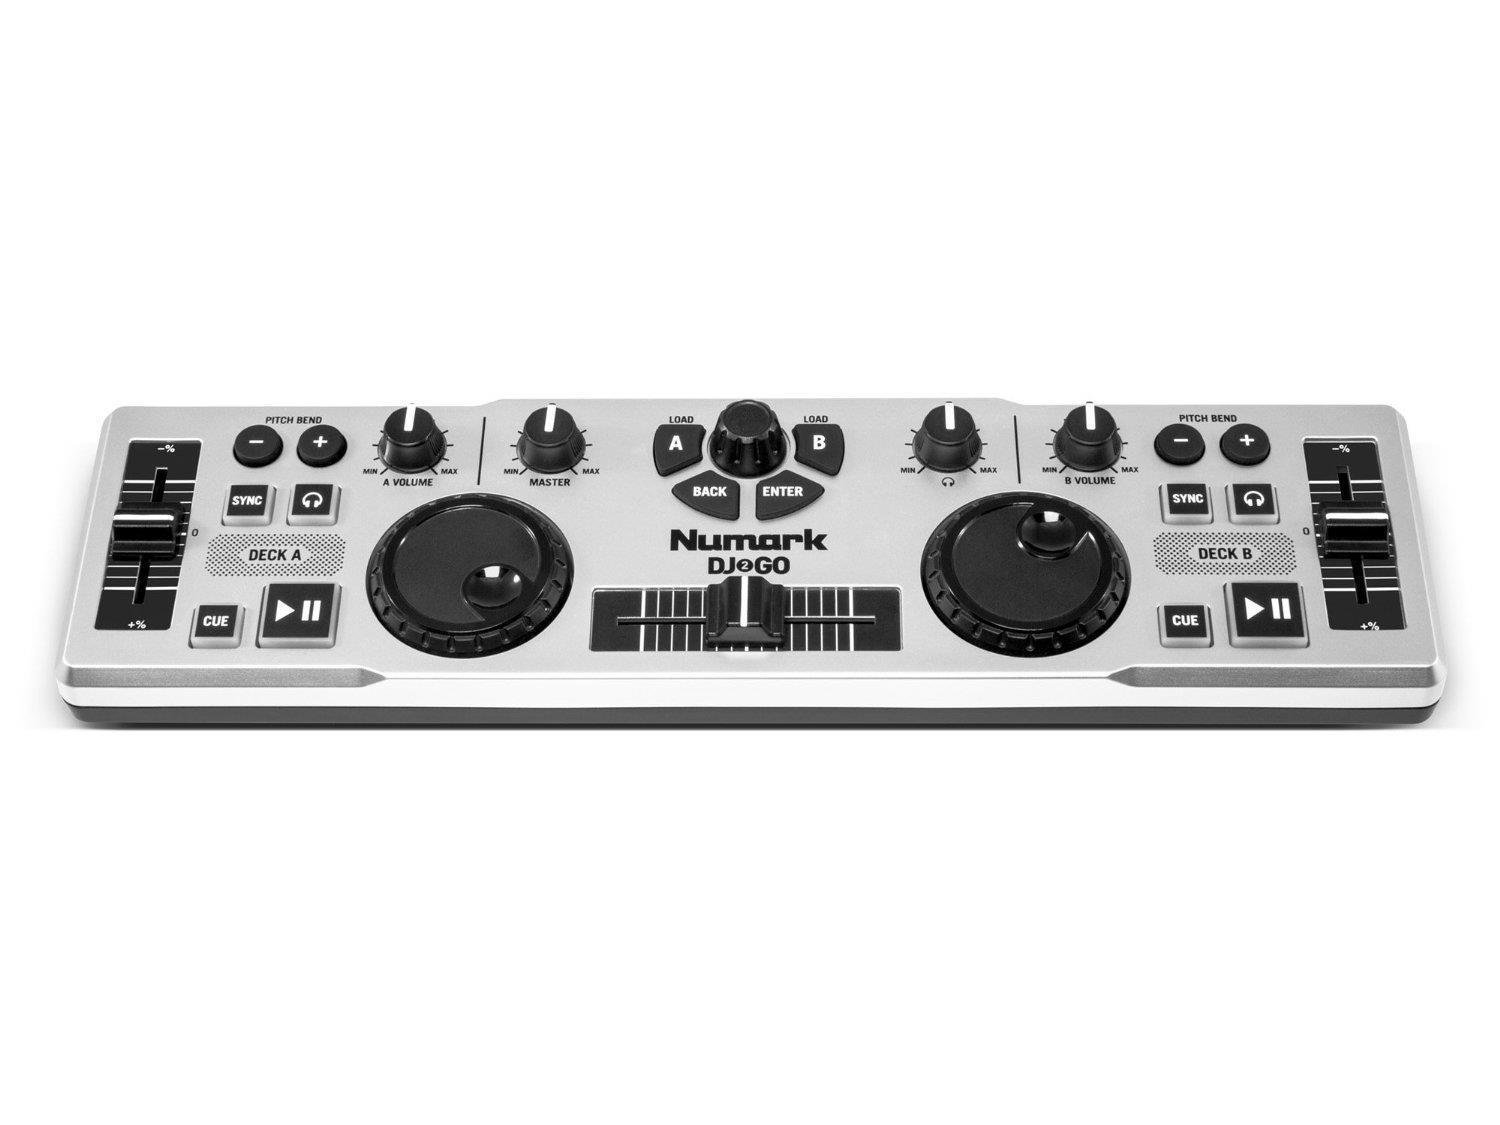 10 Best Affordable Professional DJ Controllers for iPad ...  10 Best Afforda...